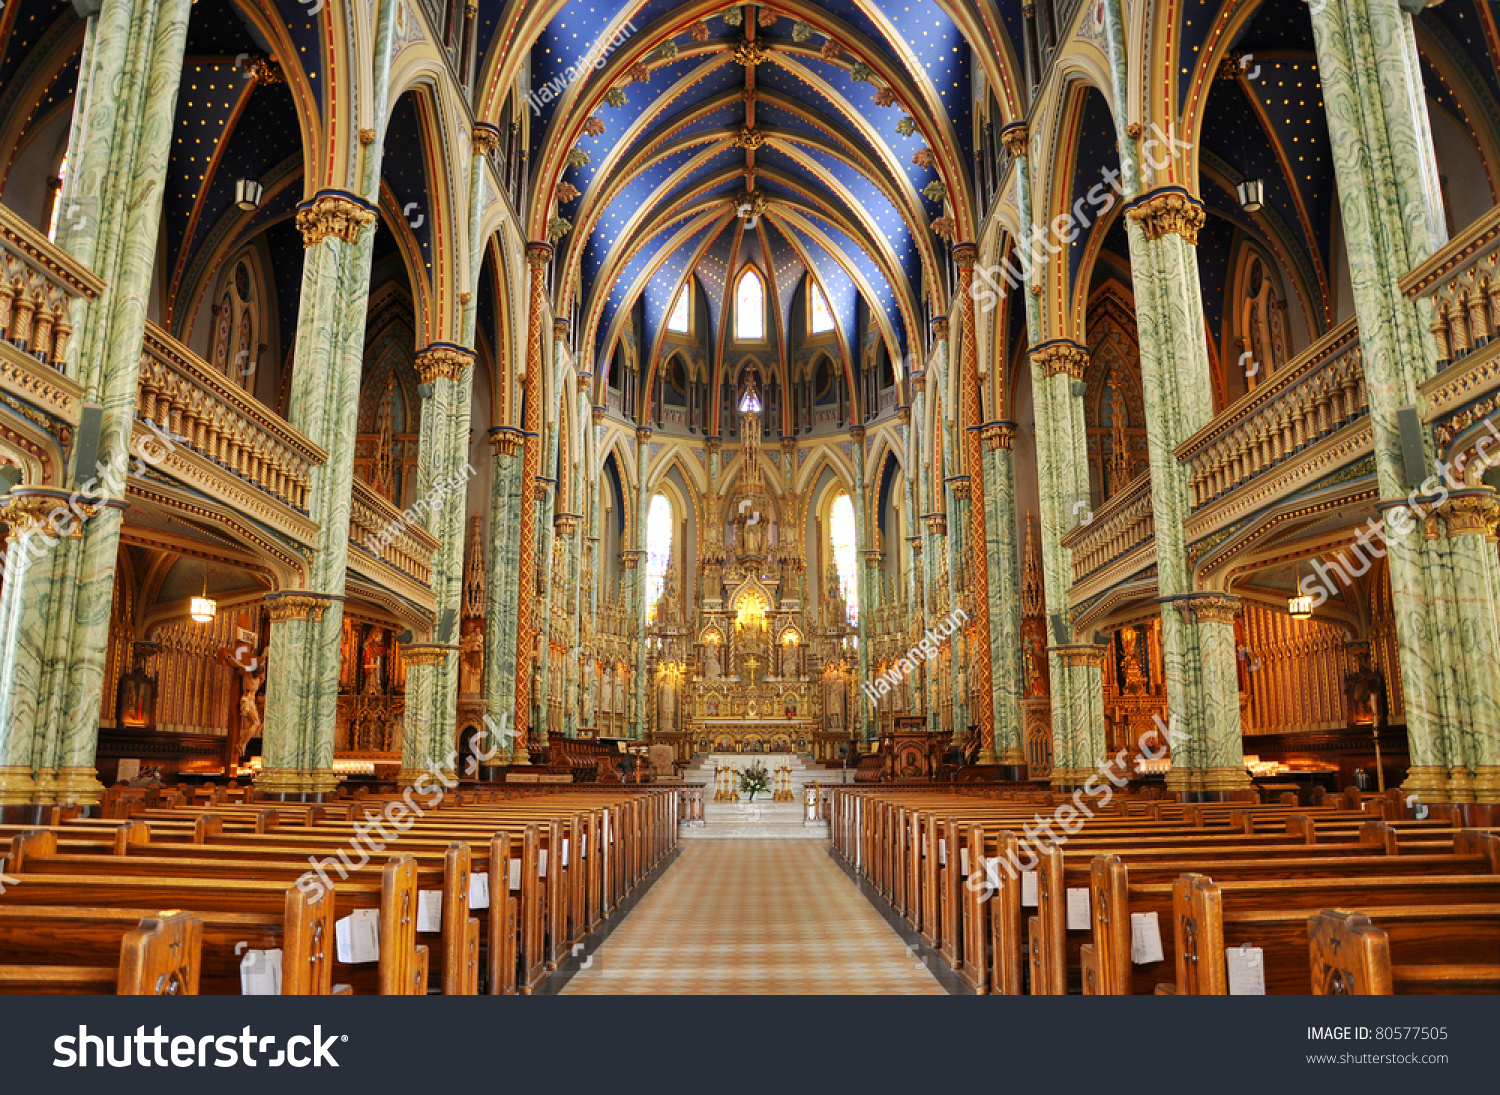 Canada Science & Technology Museum Ottawa, Interior Notredame Cathedral Basilica Ottawa Ontario Stock Photo ...